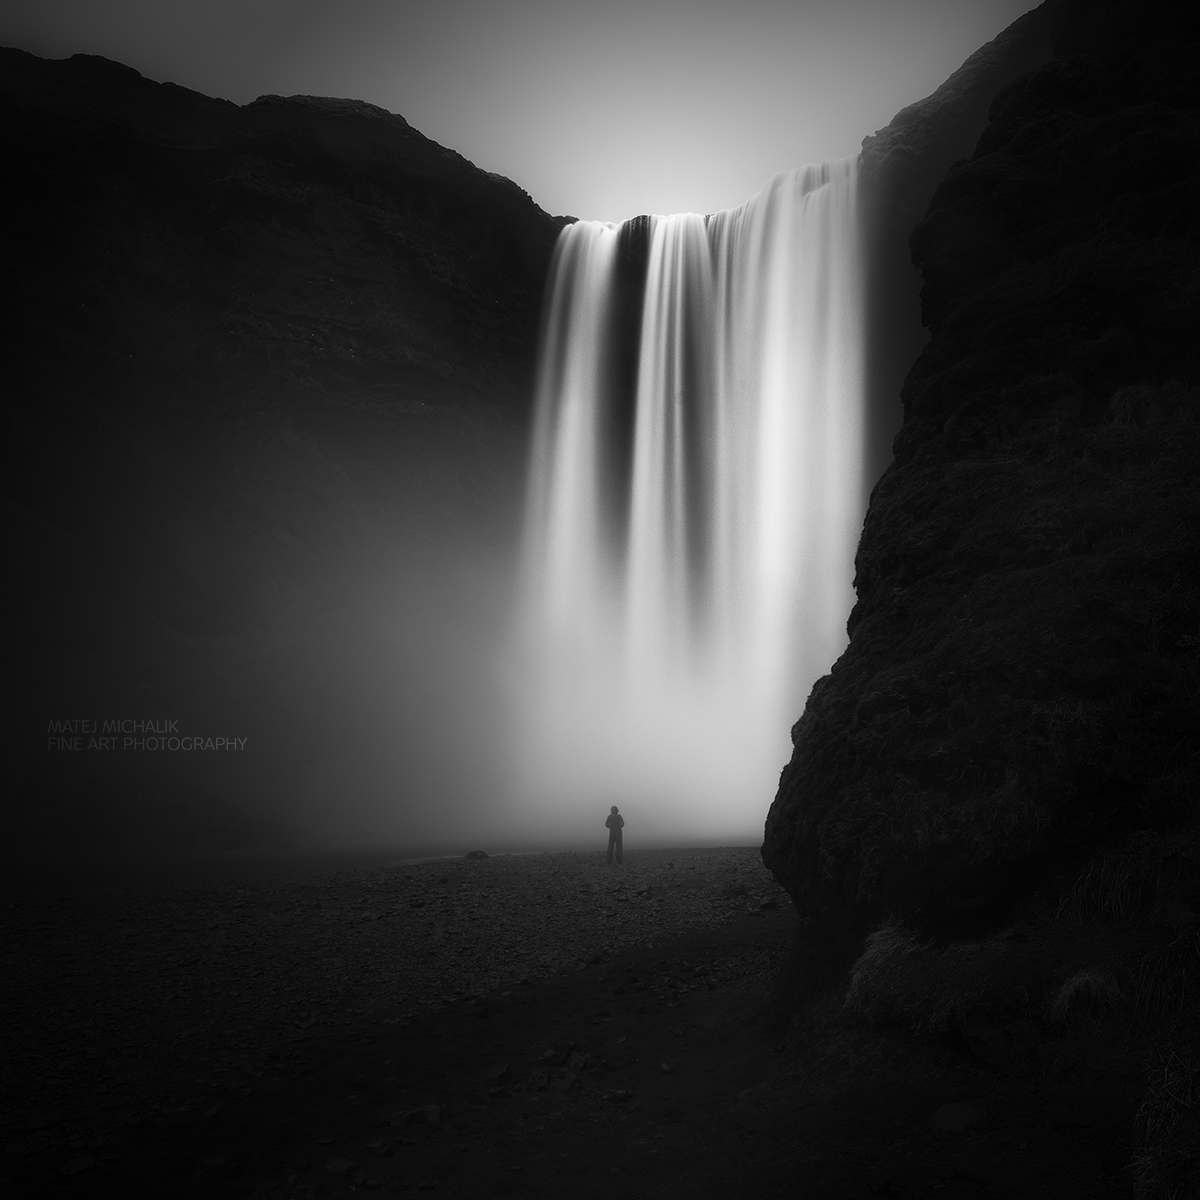 Stunning b w photos of landscapes and seascapes for sale for Photography pictures for sale